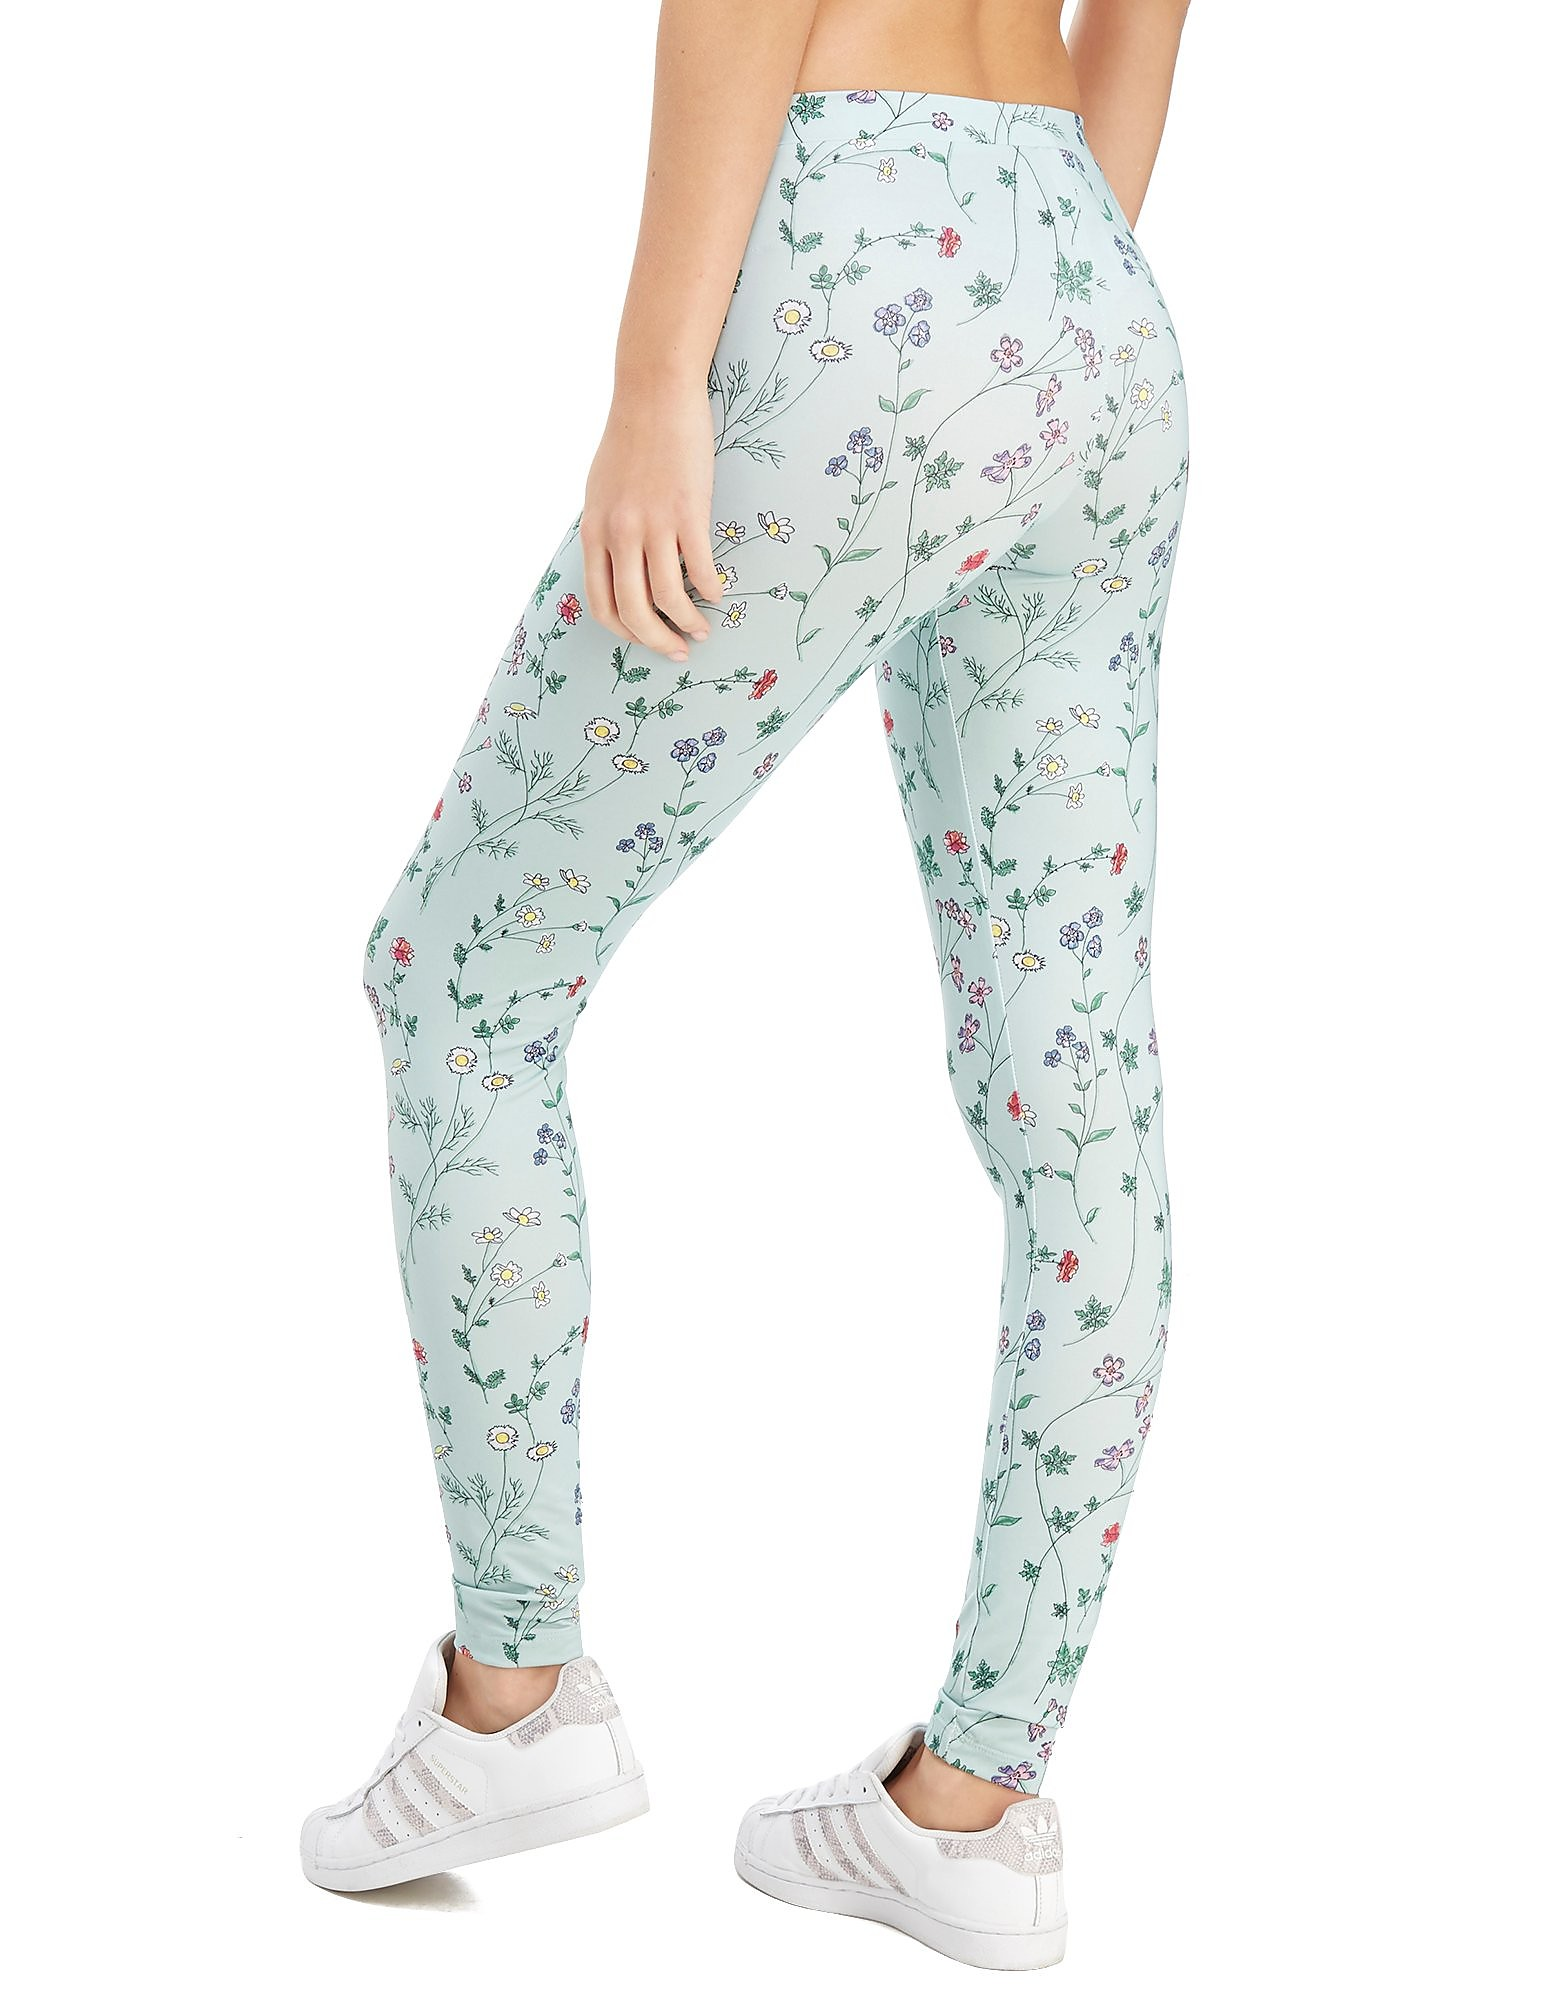 adidas Originals All Over Print Floral Leggings